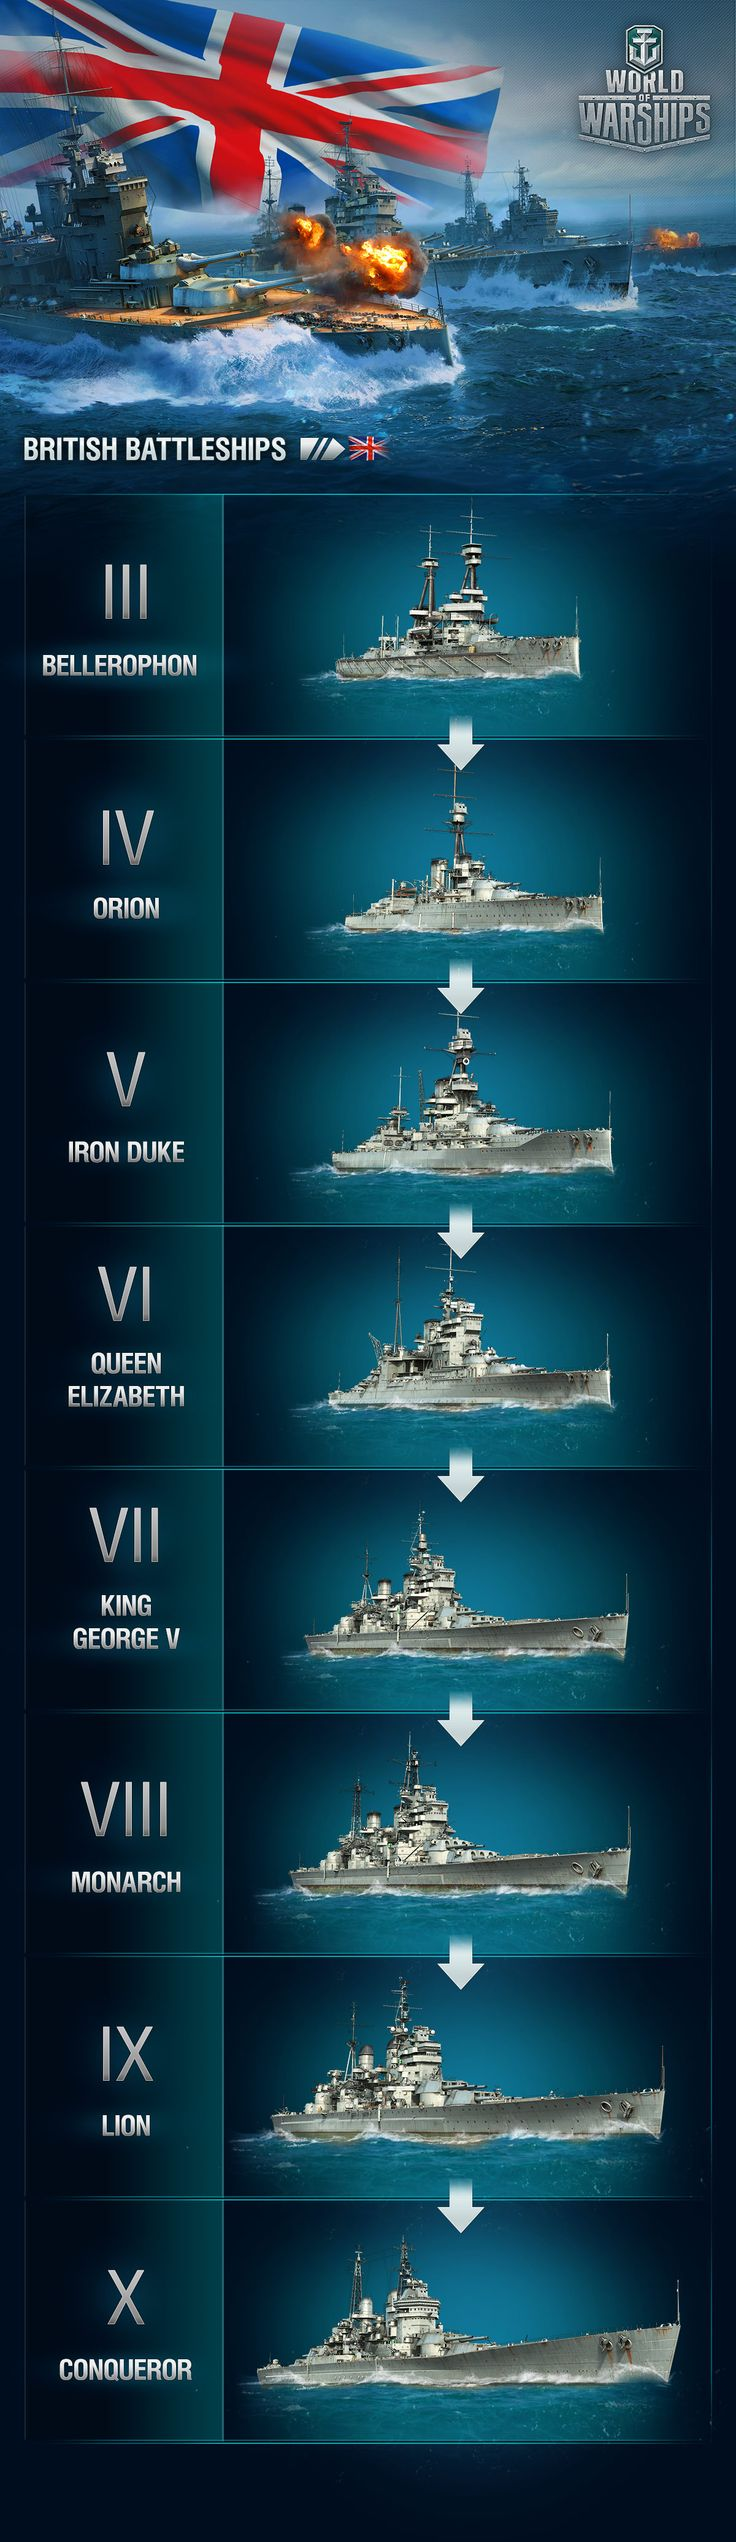 World of Warships - free online battleship game, read recent WoWS news